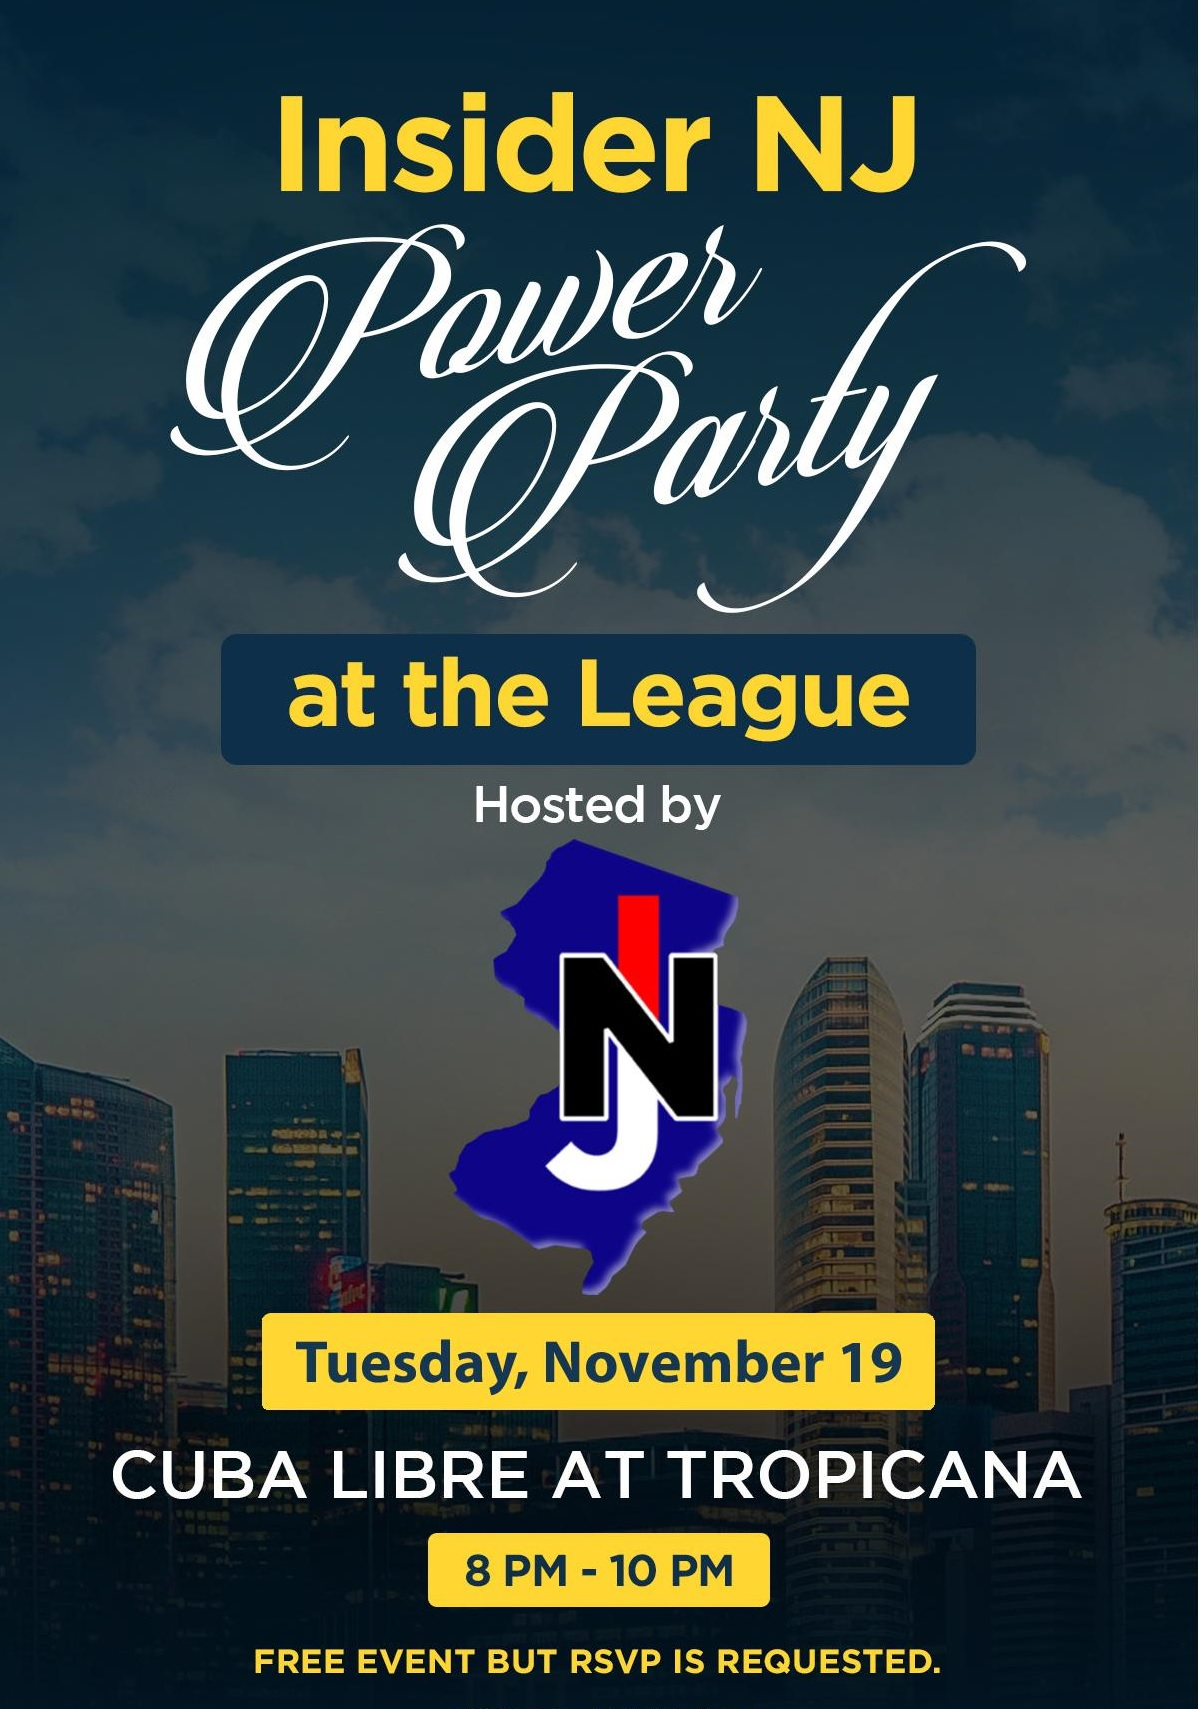 Insider NJ Power Party